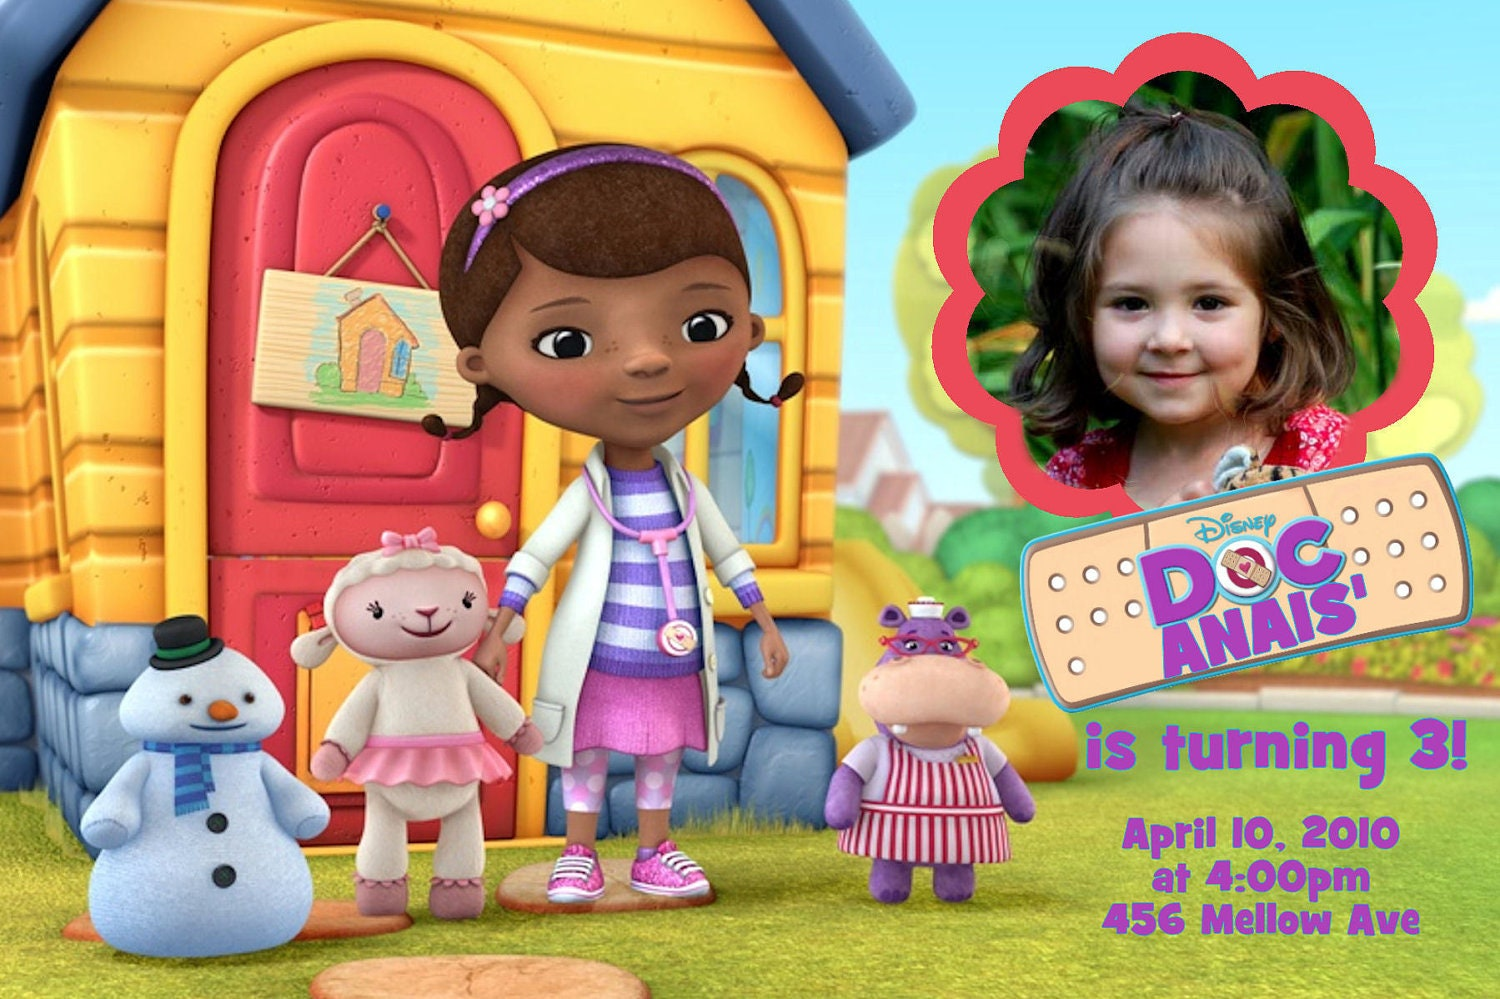 Doc McStuffins  Birthday Party Invitations 24 HOUR SERVICE 4x6 or 5x7